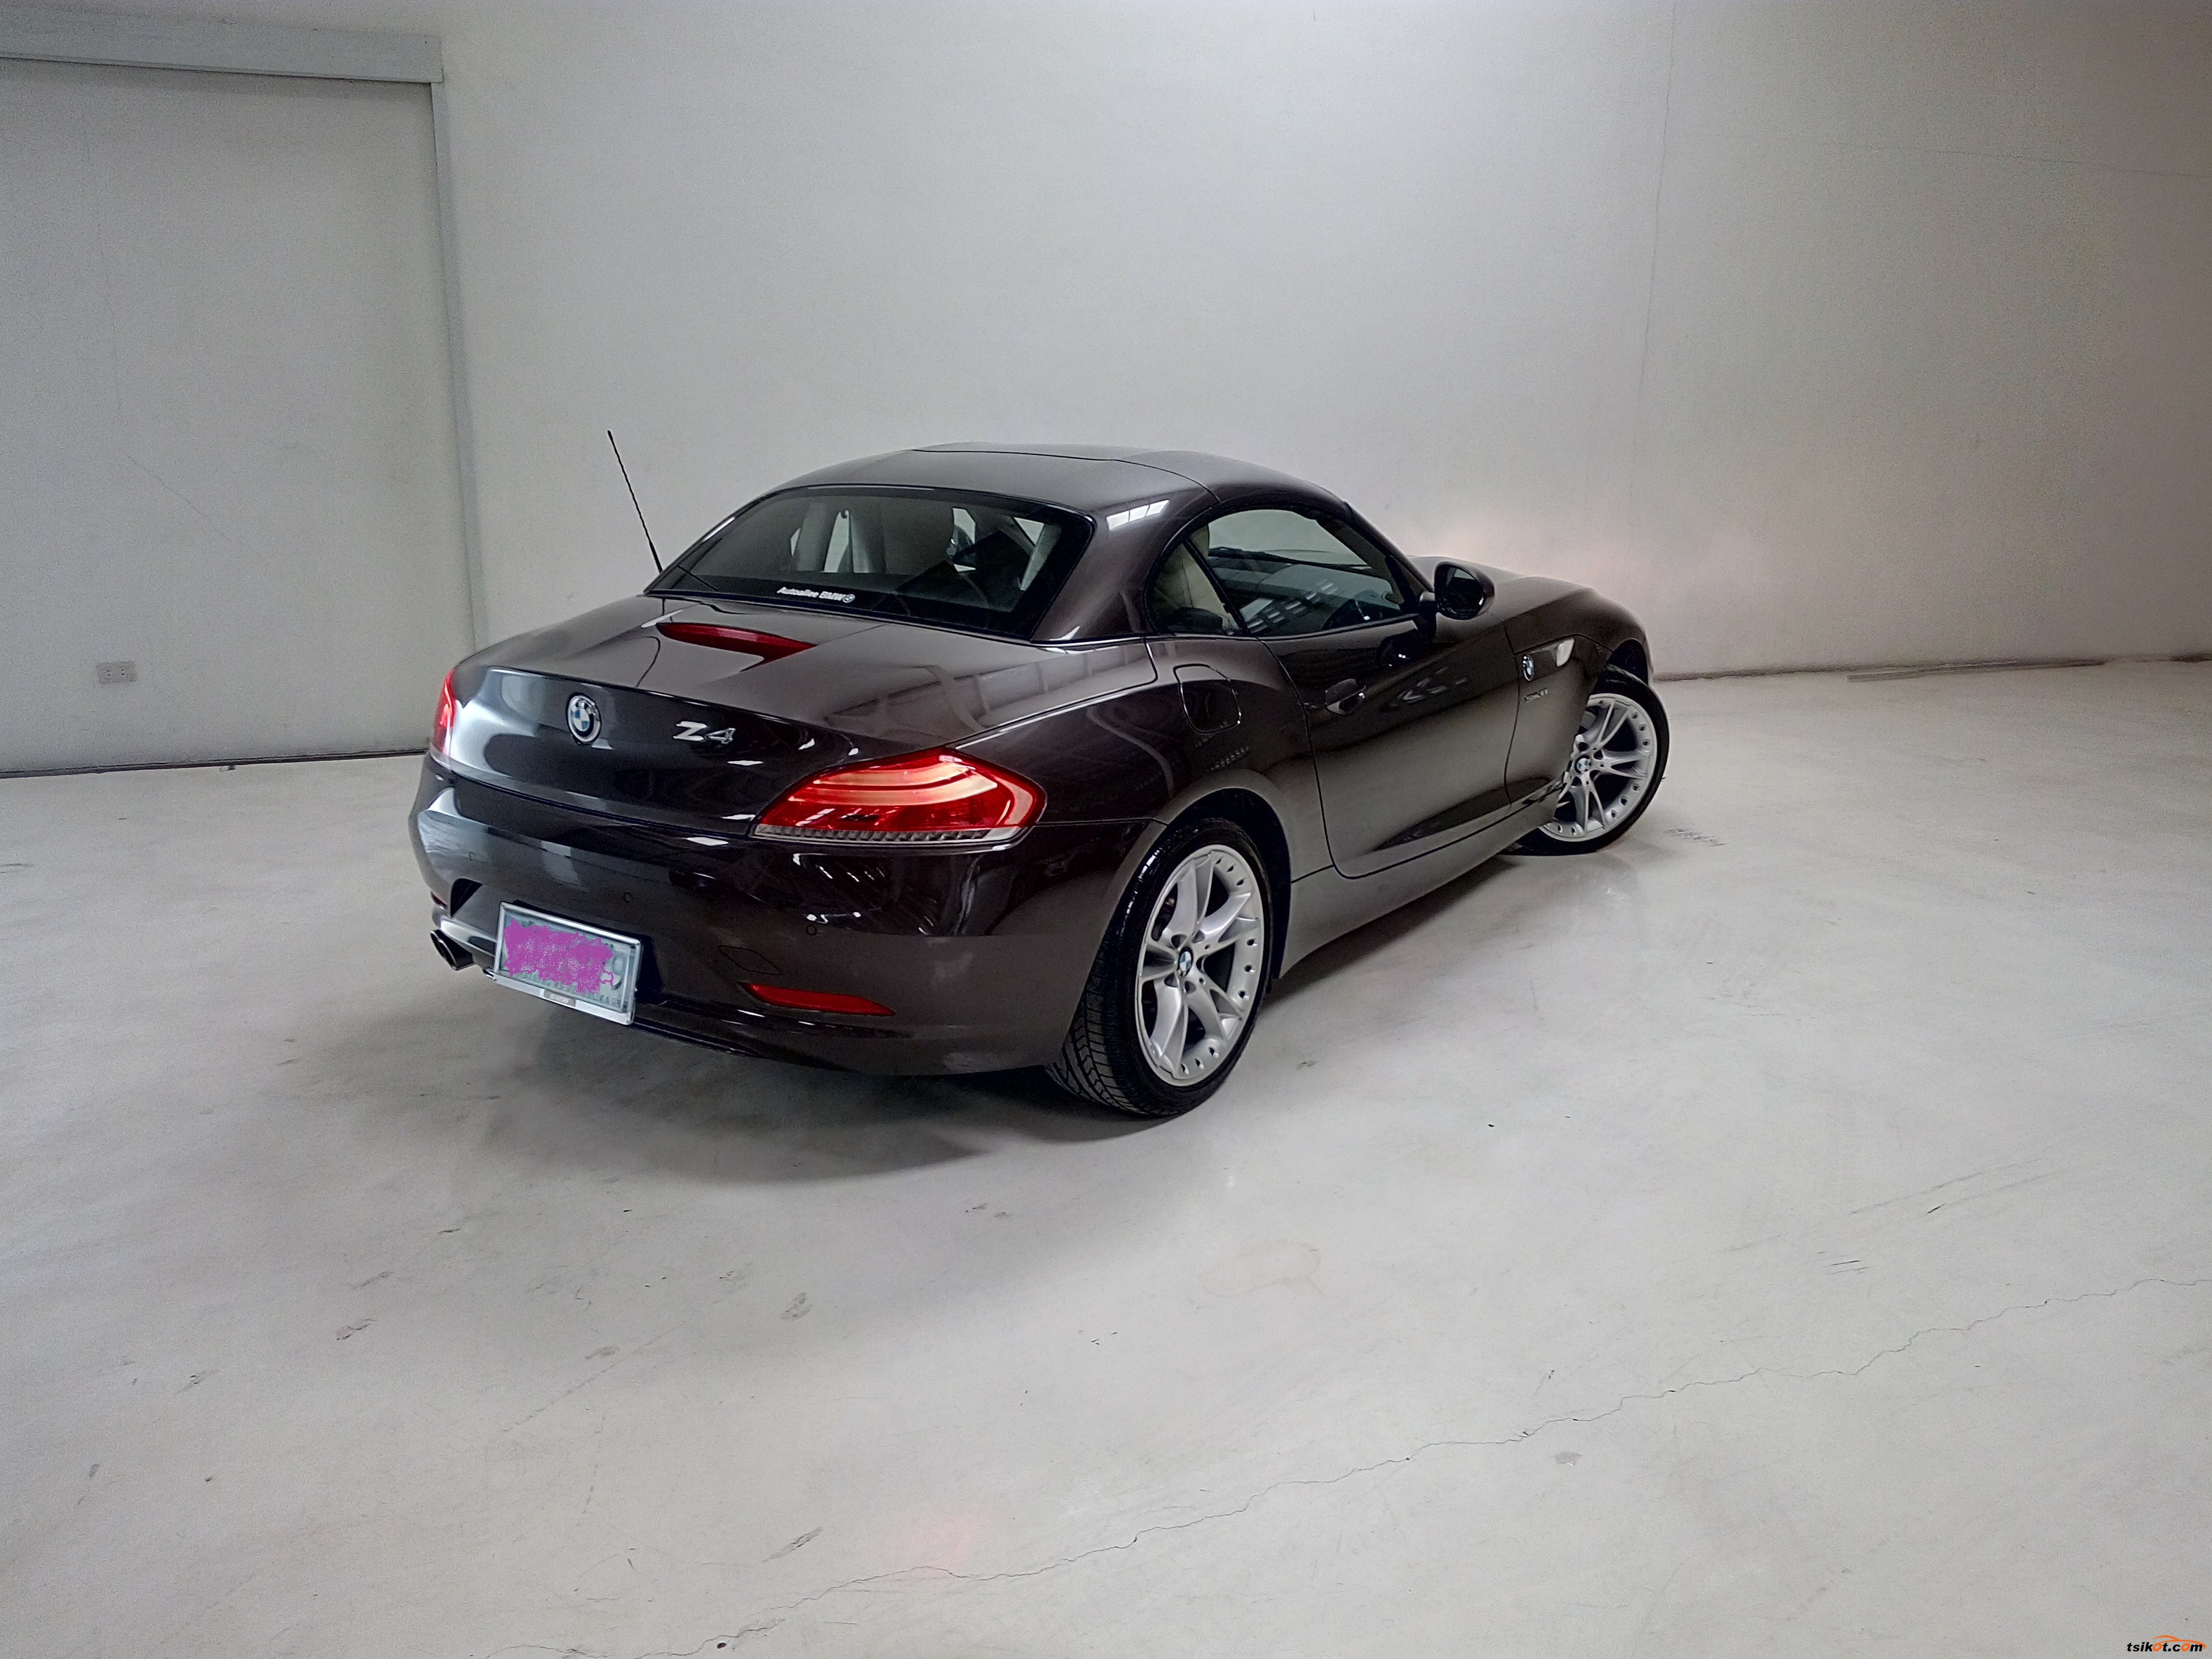 Bmw Z4 2011 Car For Sale Metro Manila